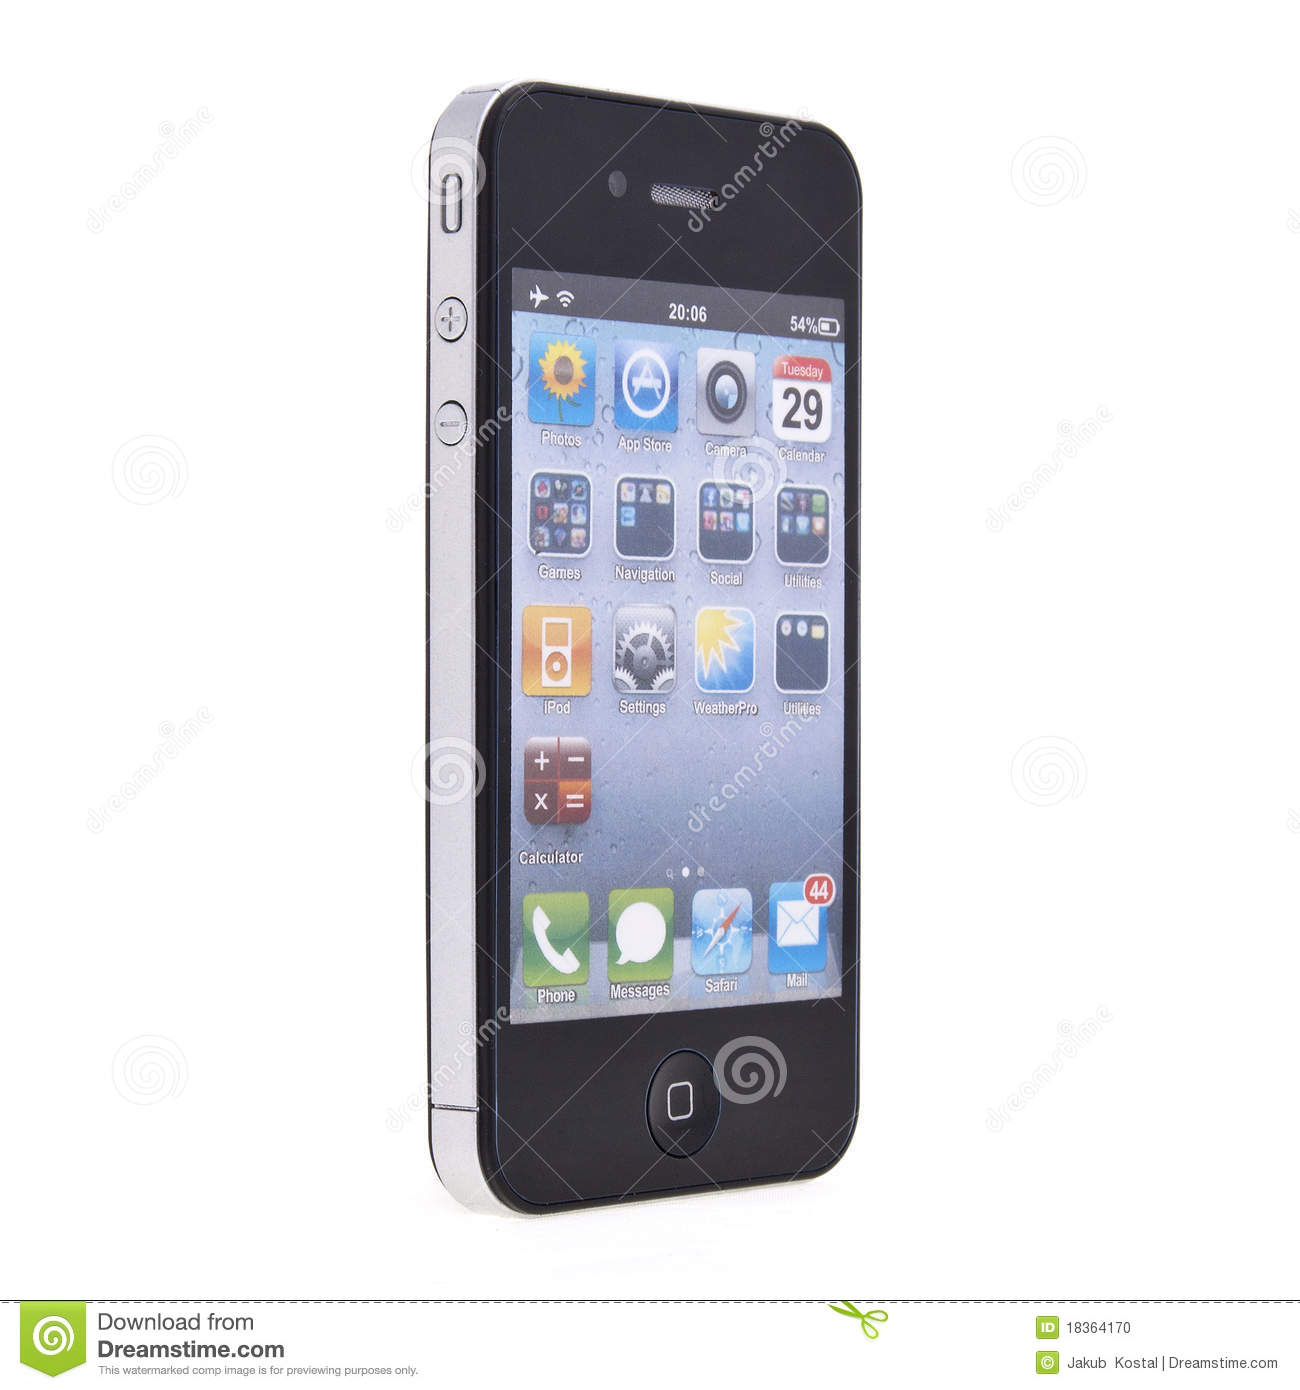 Nuevo iPhone 4 de Apple